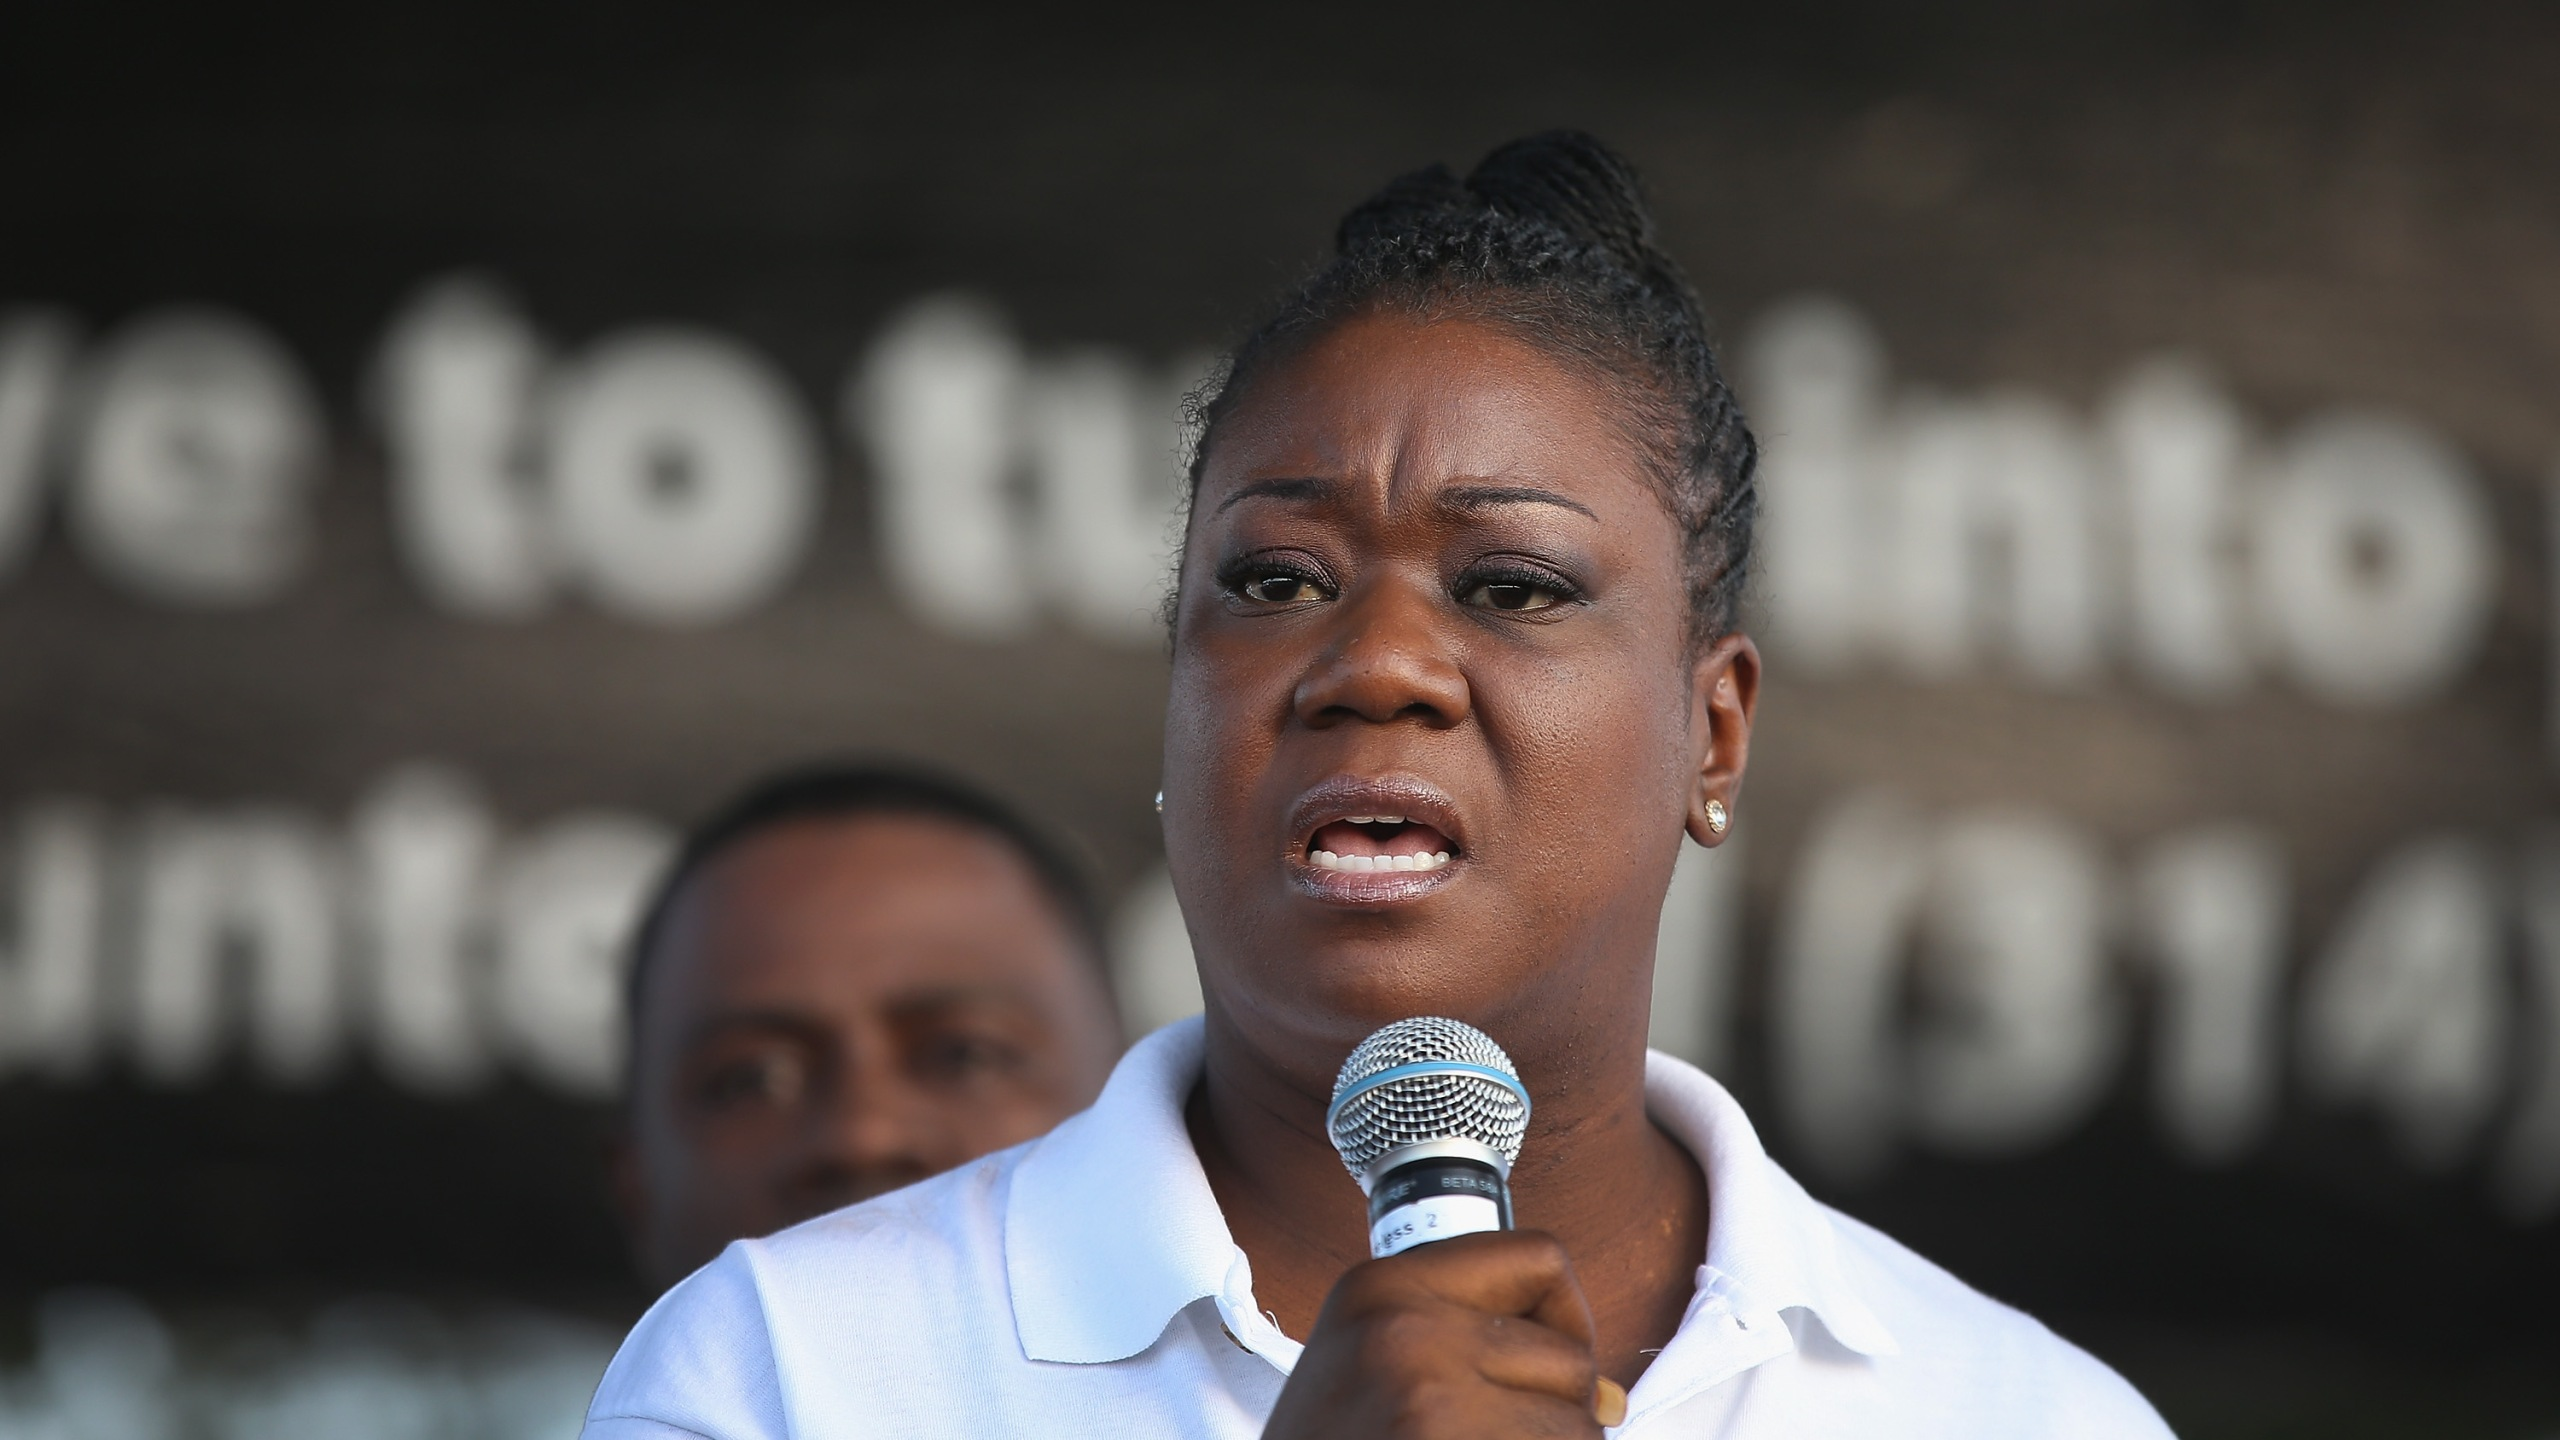 Sybrina Fulton, the mother of Trayvon Martin, speaks at Peace Fest in Forest Park on August 24, 2014 in St. Louis, Missouri. (Credit: Scott Olson/Getty Images)